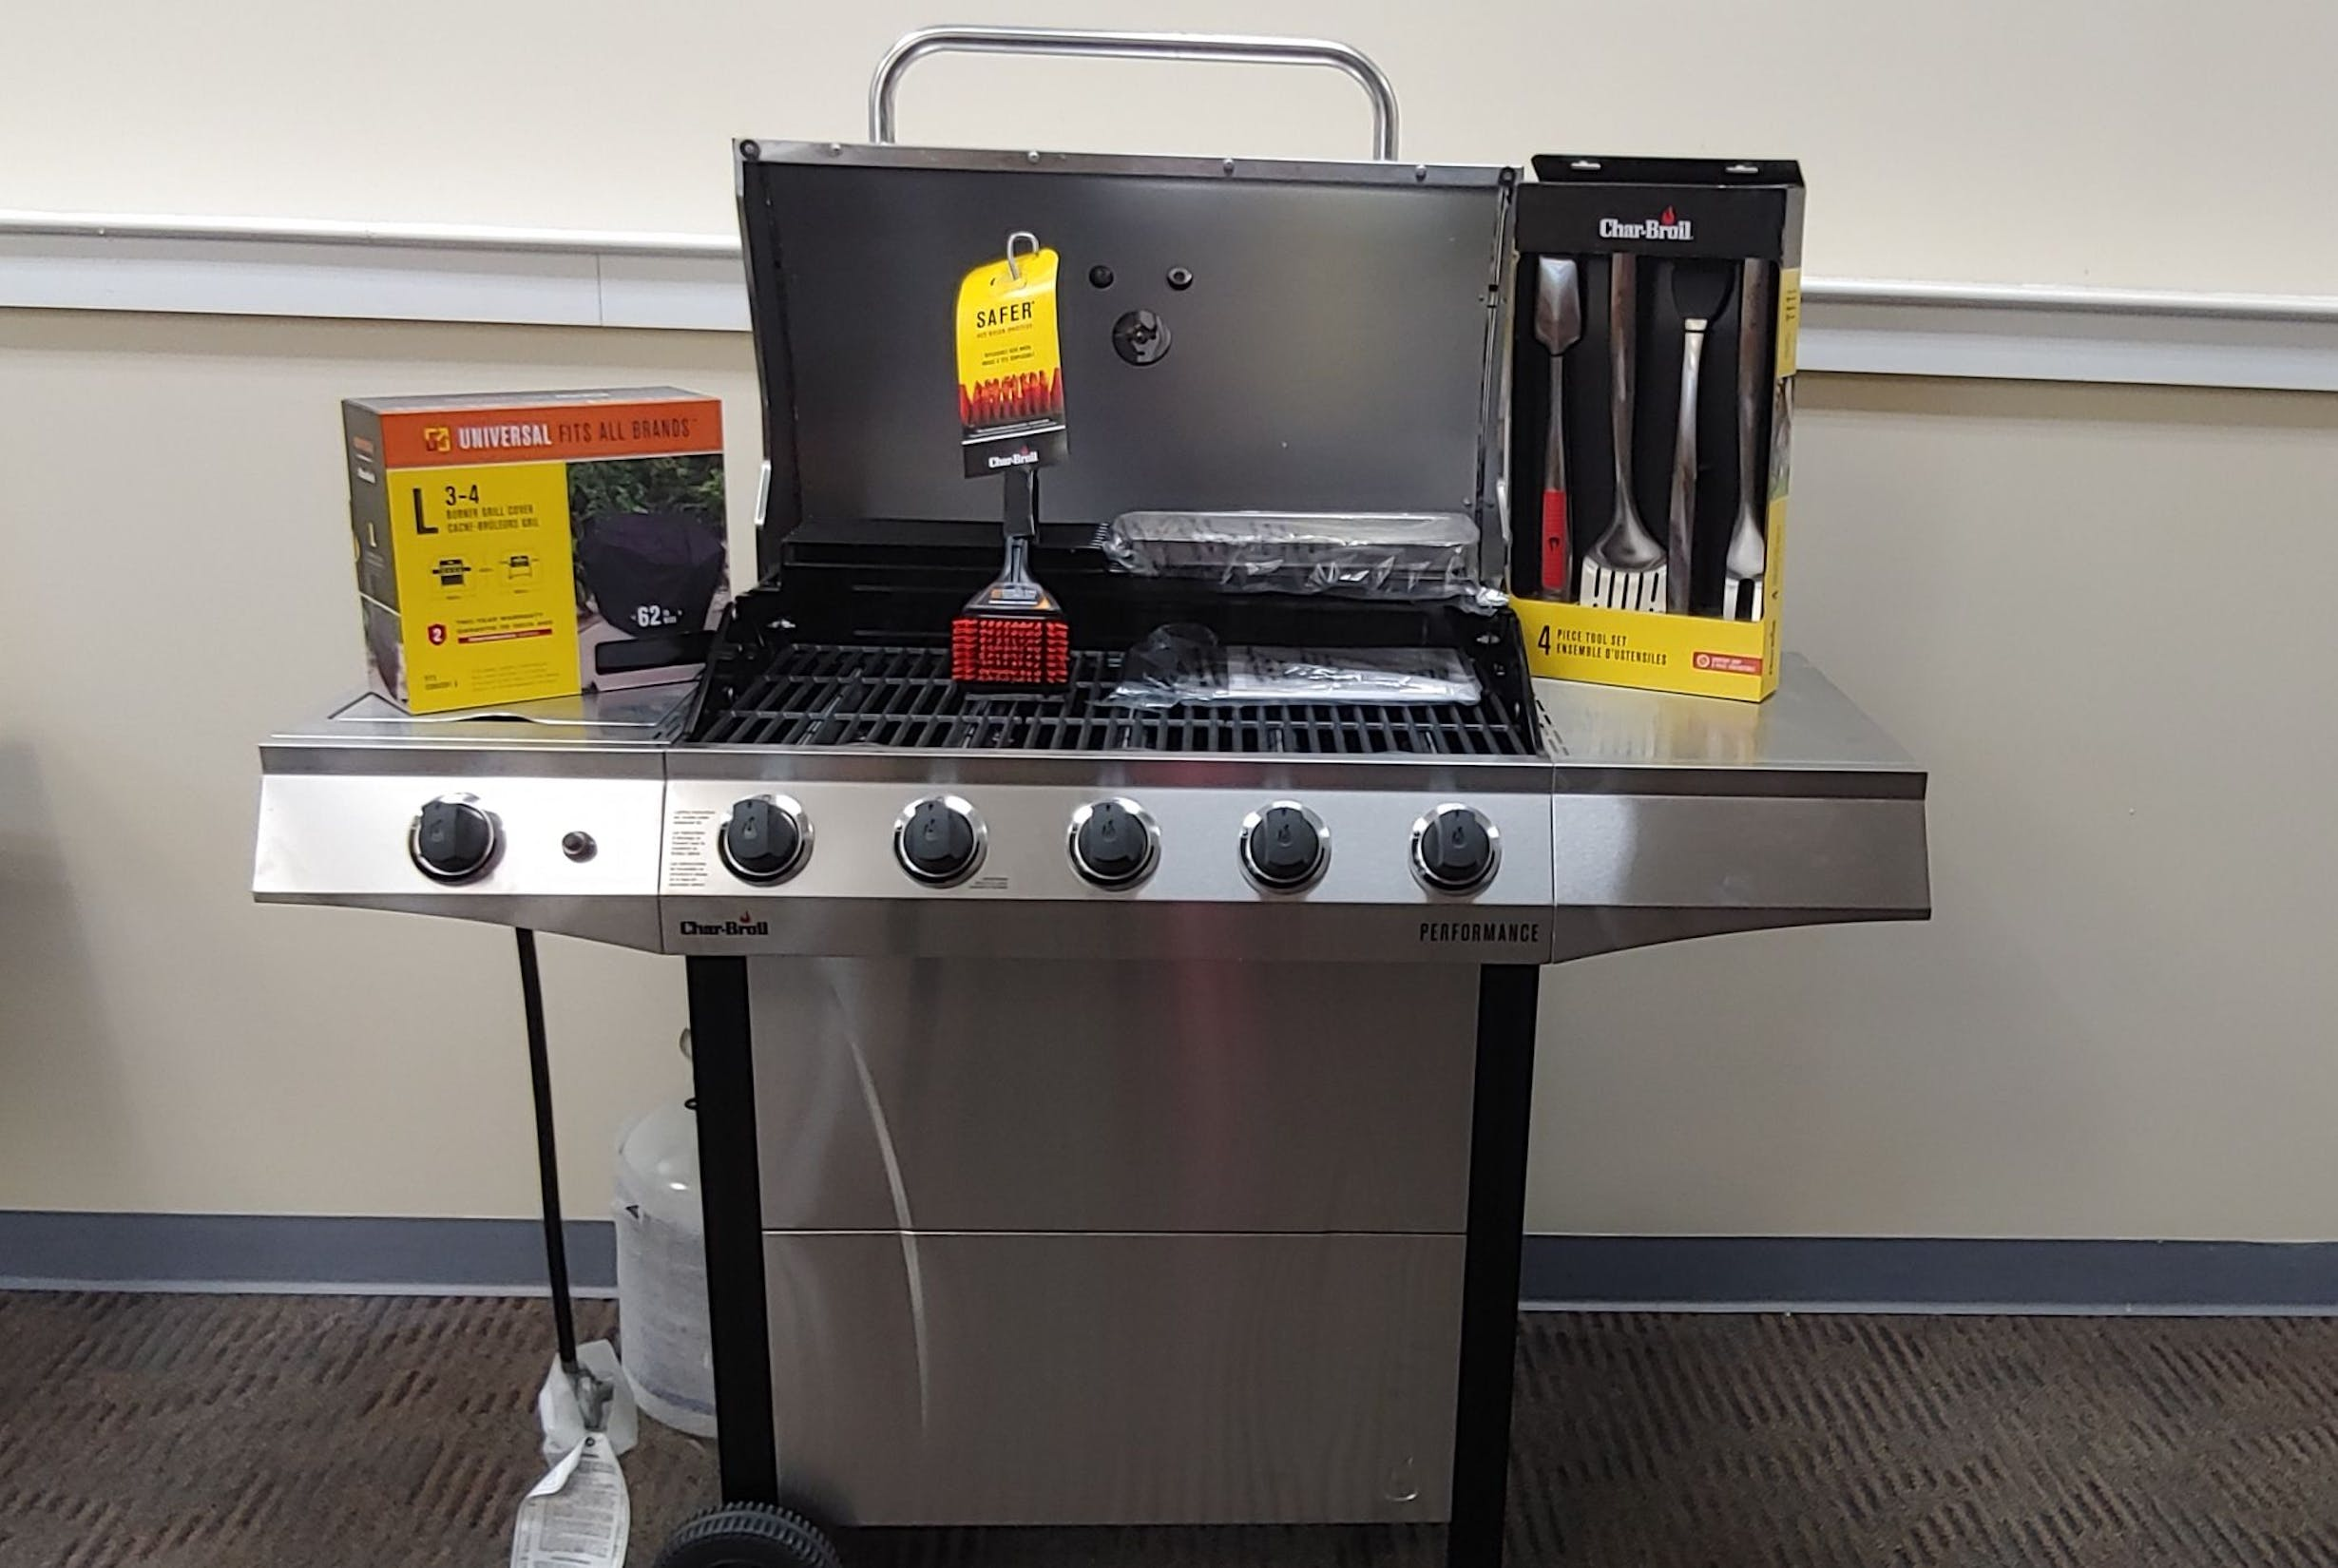 Grill Master Prize